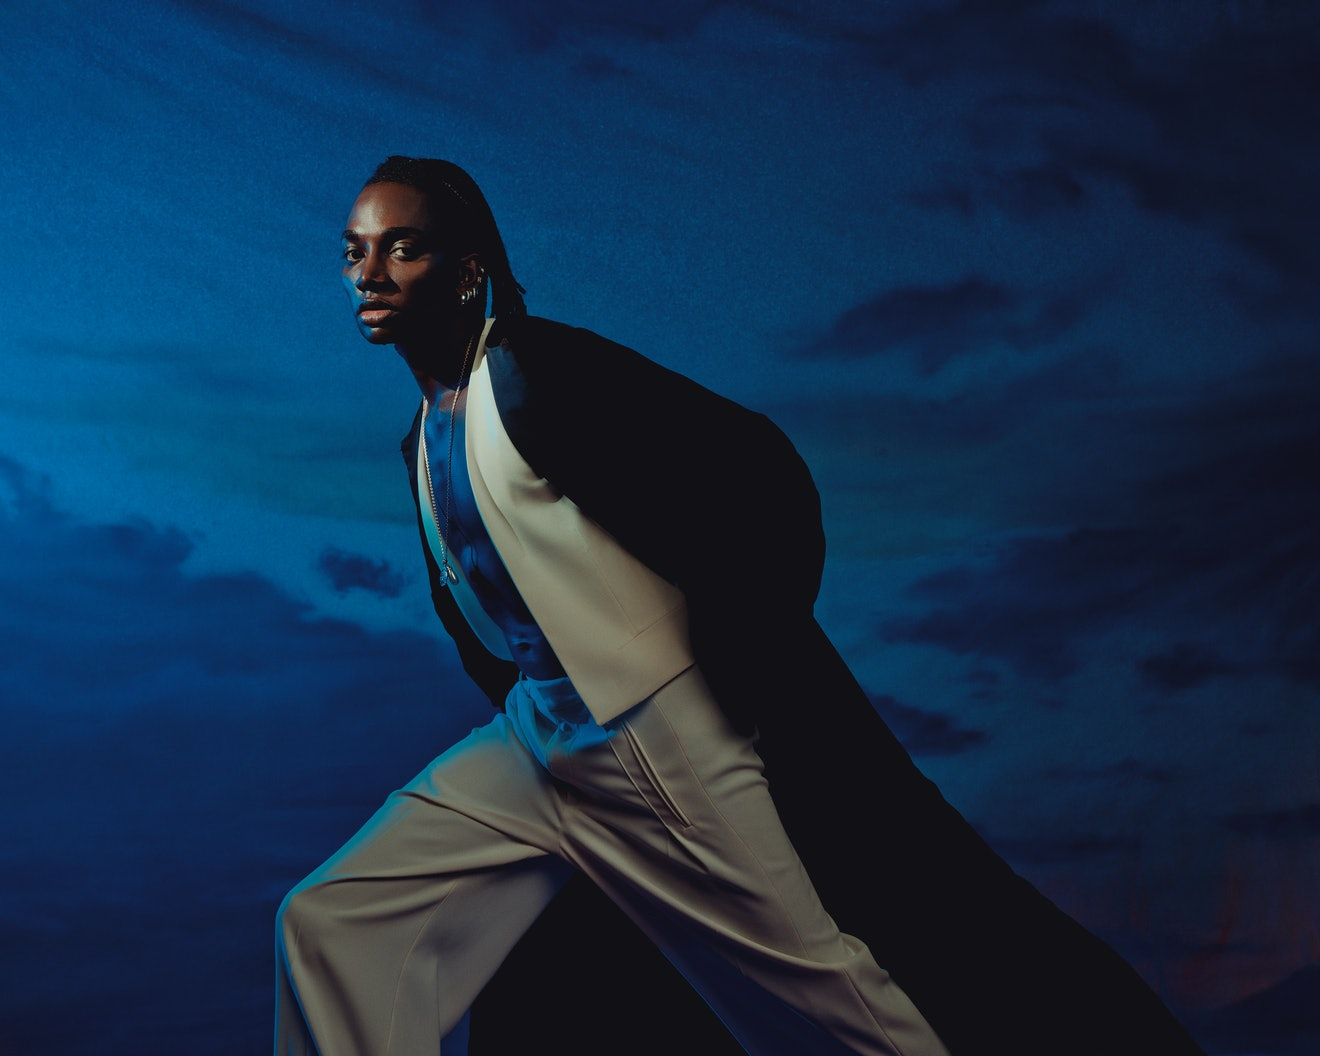 Rickey Thompson stands against a dark sky background wearing a long, open black Chanel coat and whit...